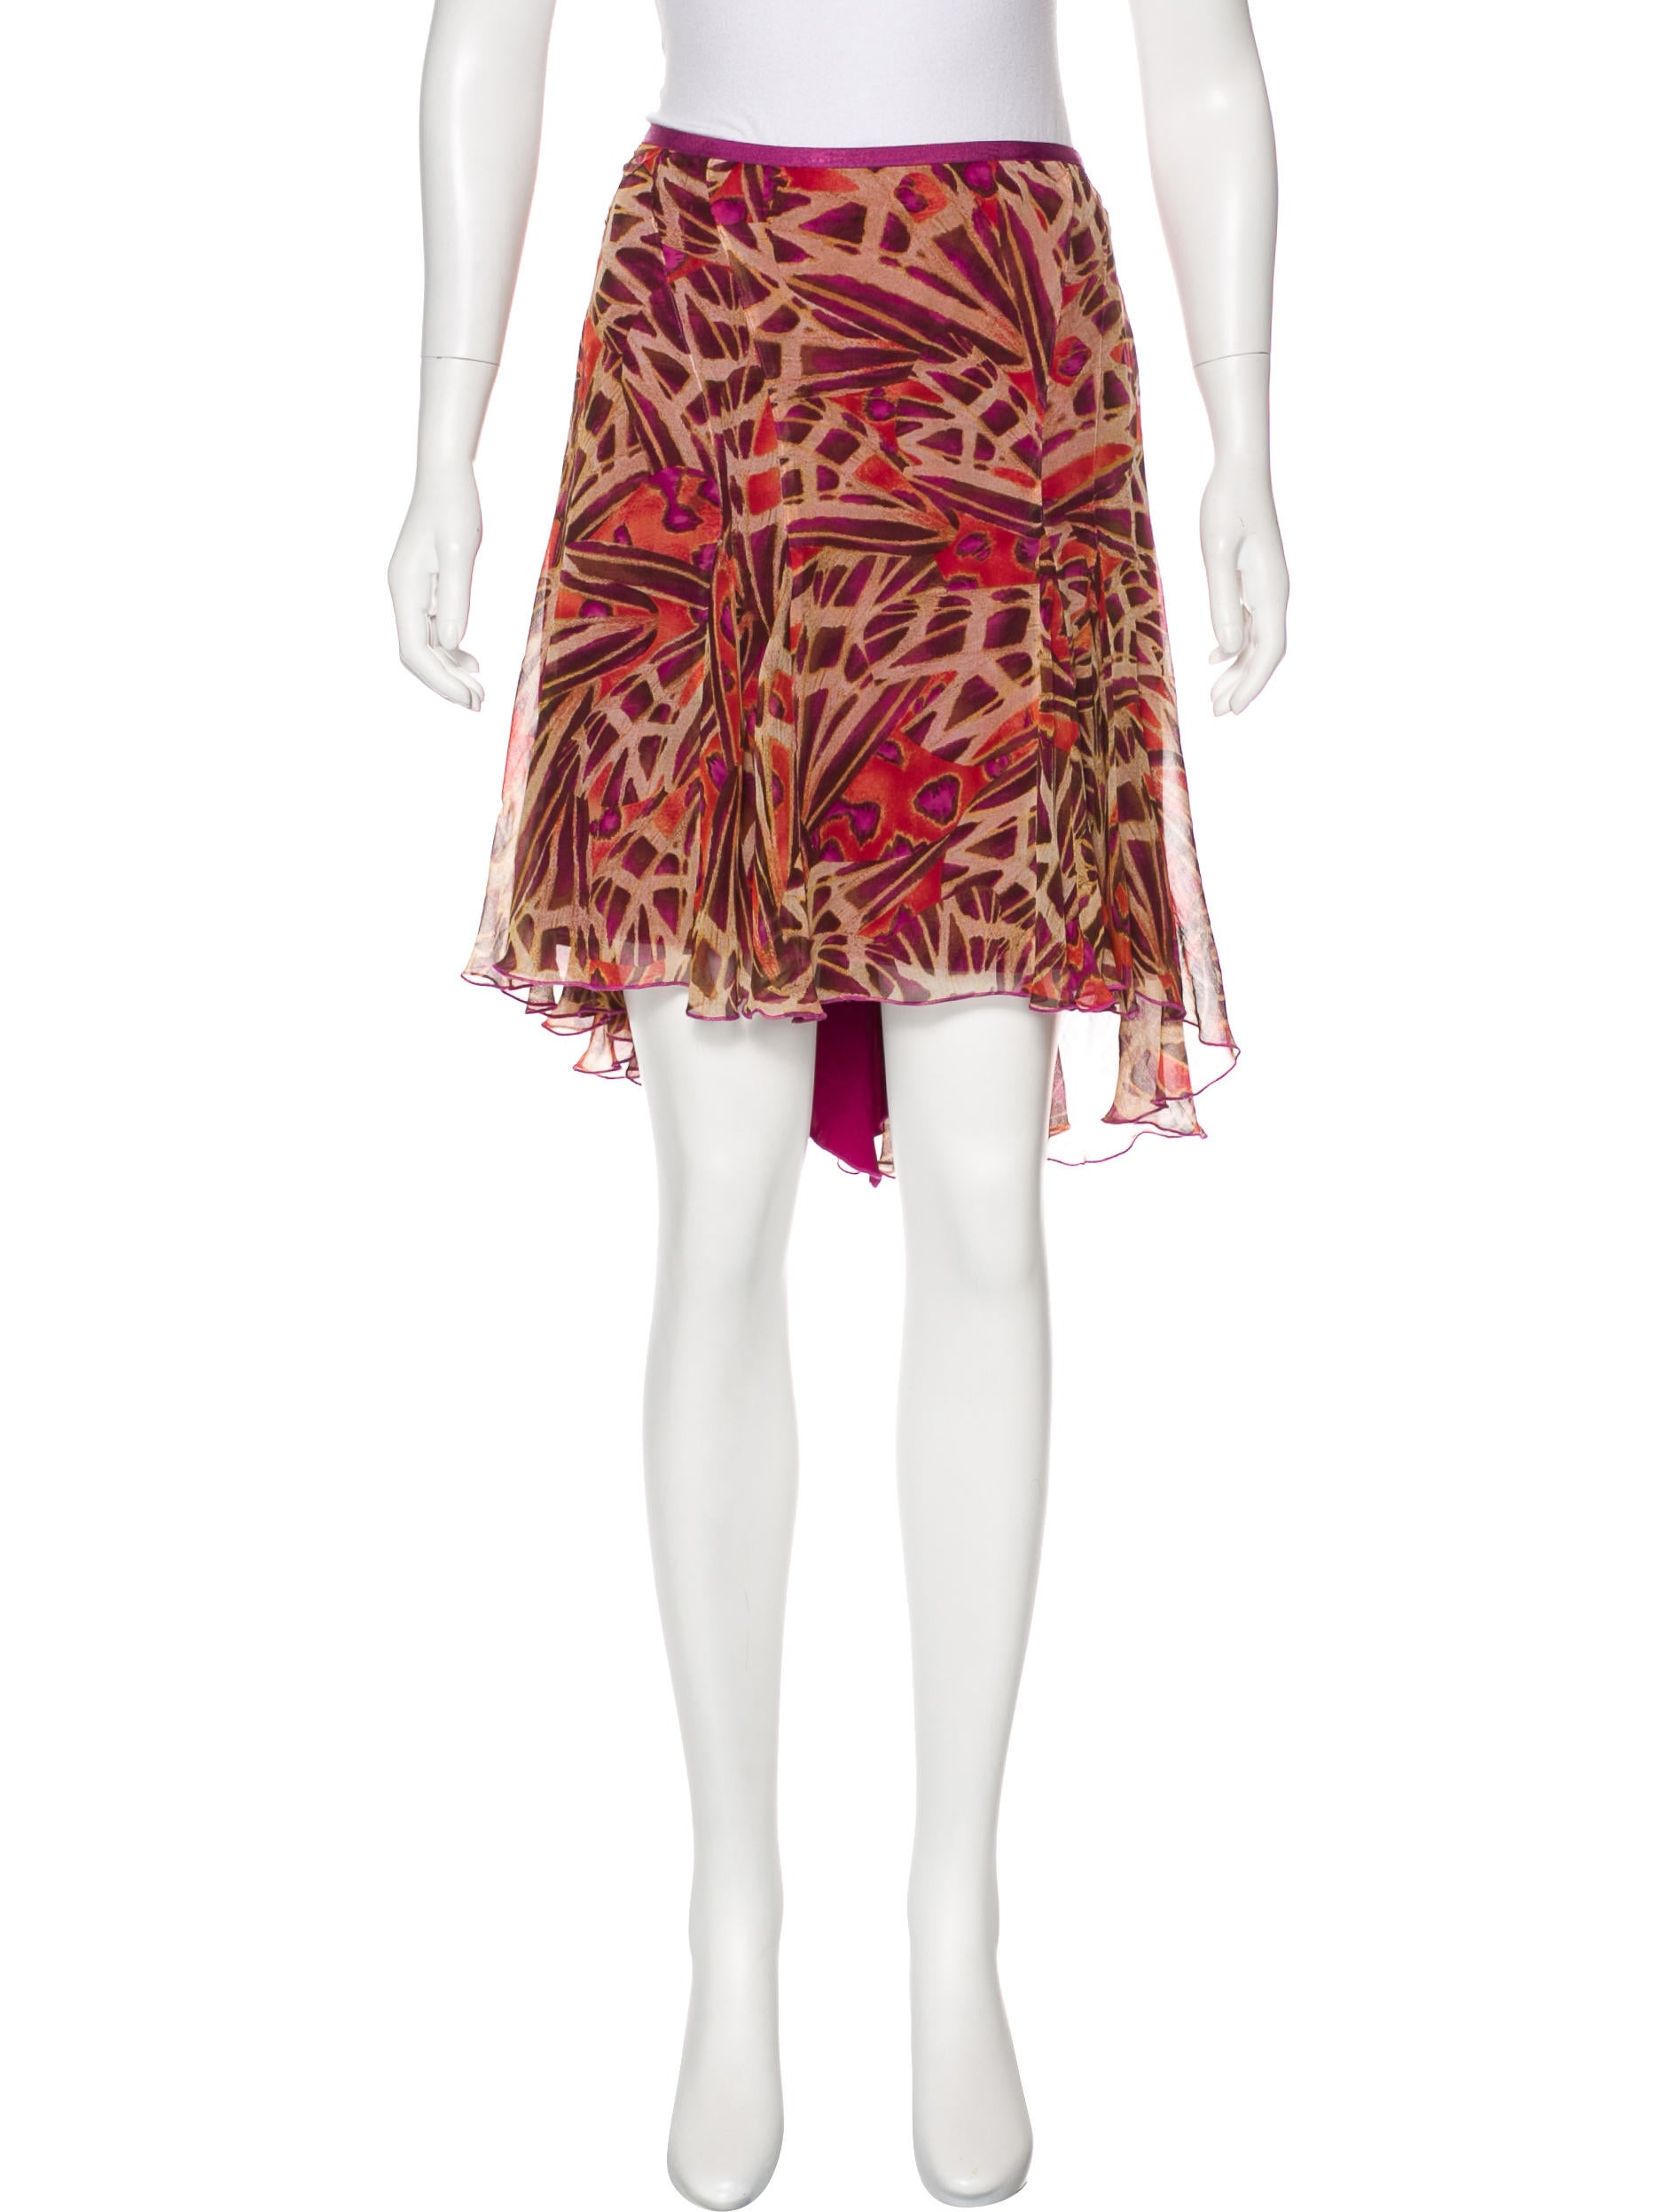 Diane Von Furstenberg Mauritius Silk Skirt Clothing Wdi110722 The Realreal